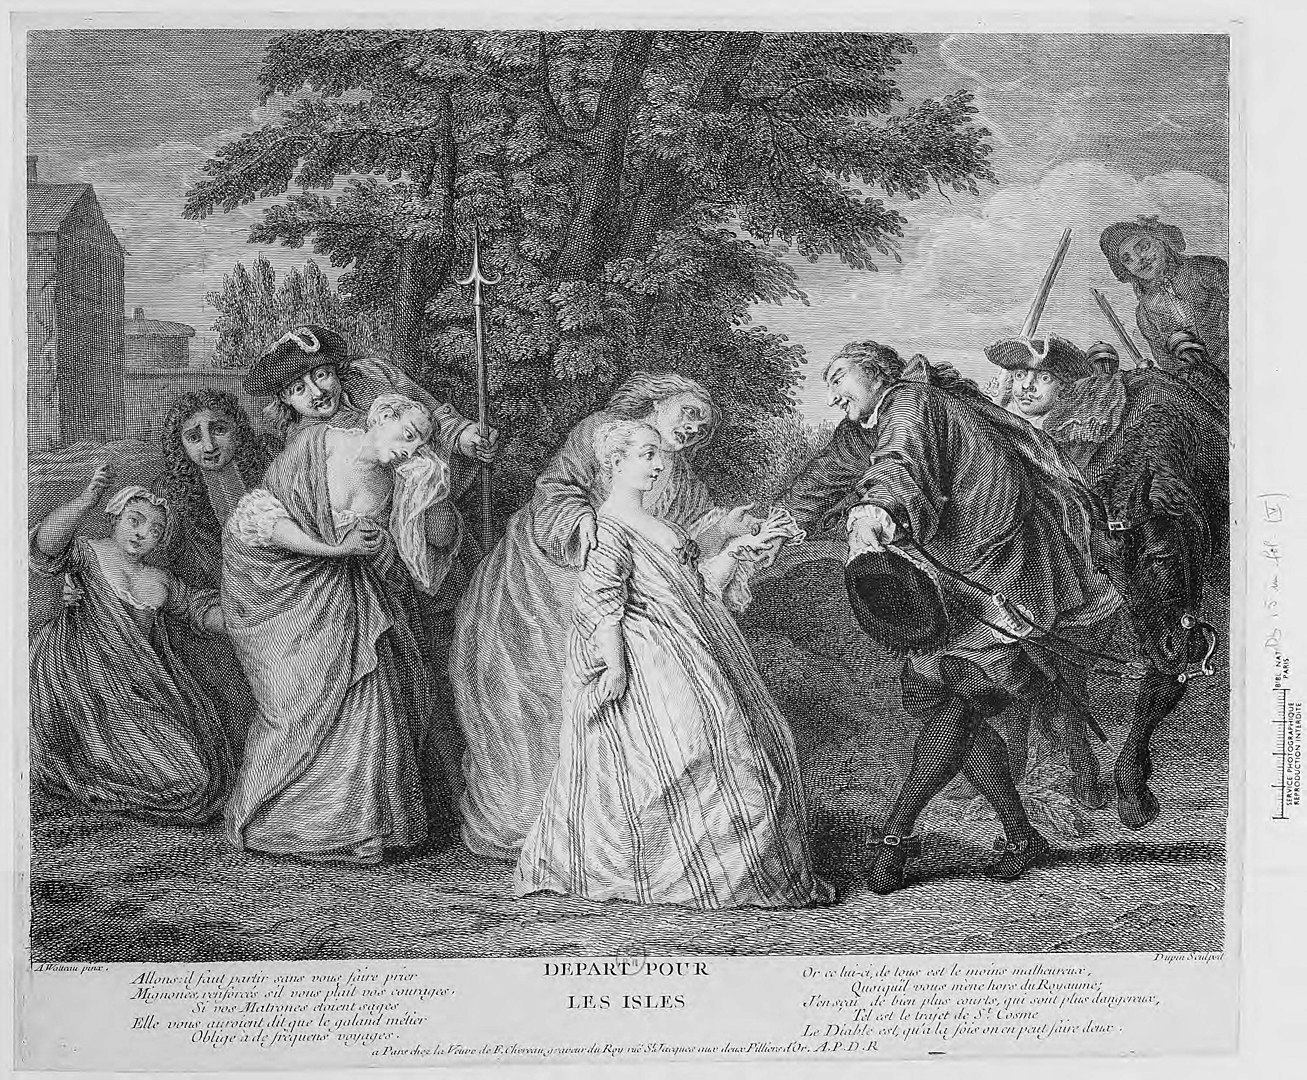 The departure of the comfort women for the American isles. By Watteau - Bibliothèque nationale de France, Public Domain, https://commons.wikimedia.org/w/index.php?curid=11297875